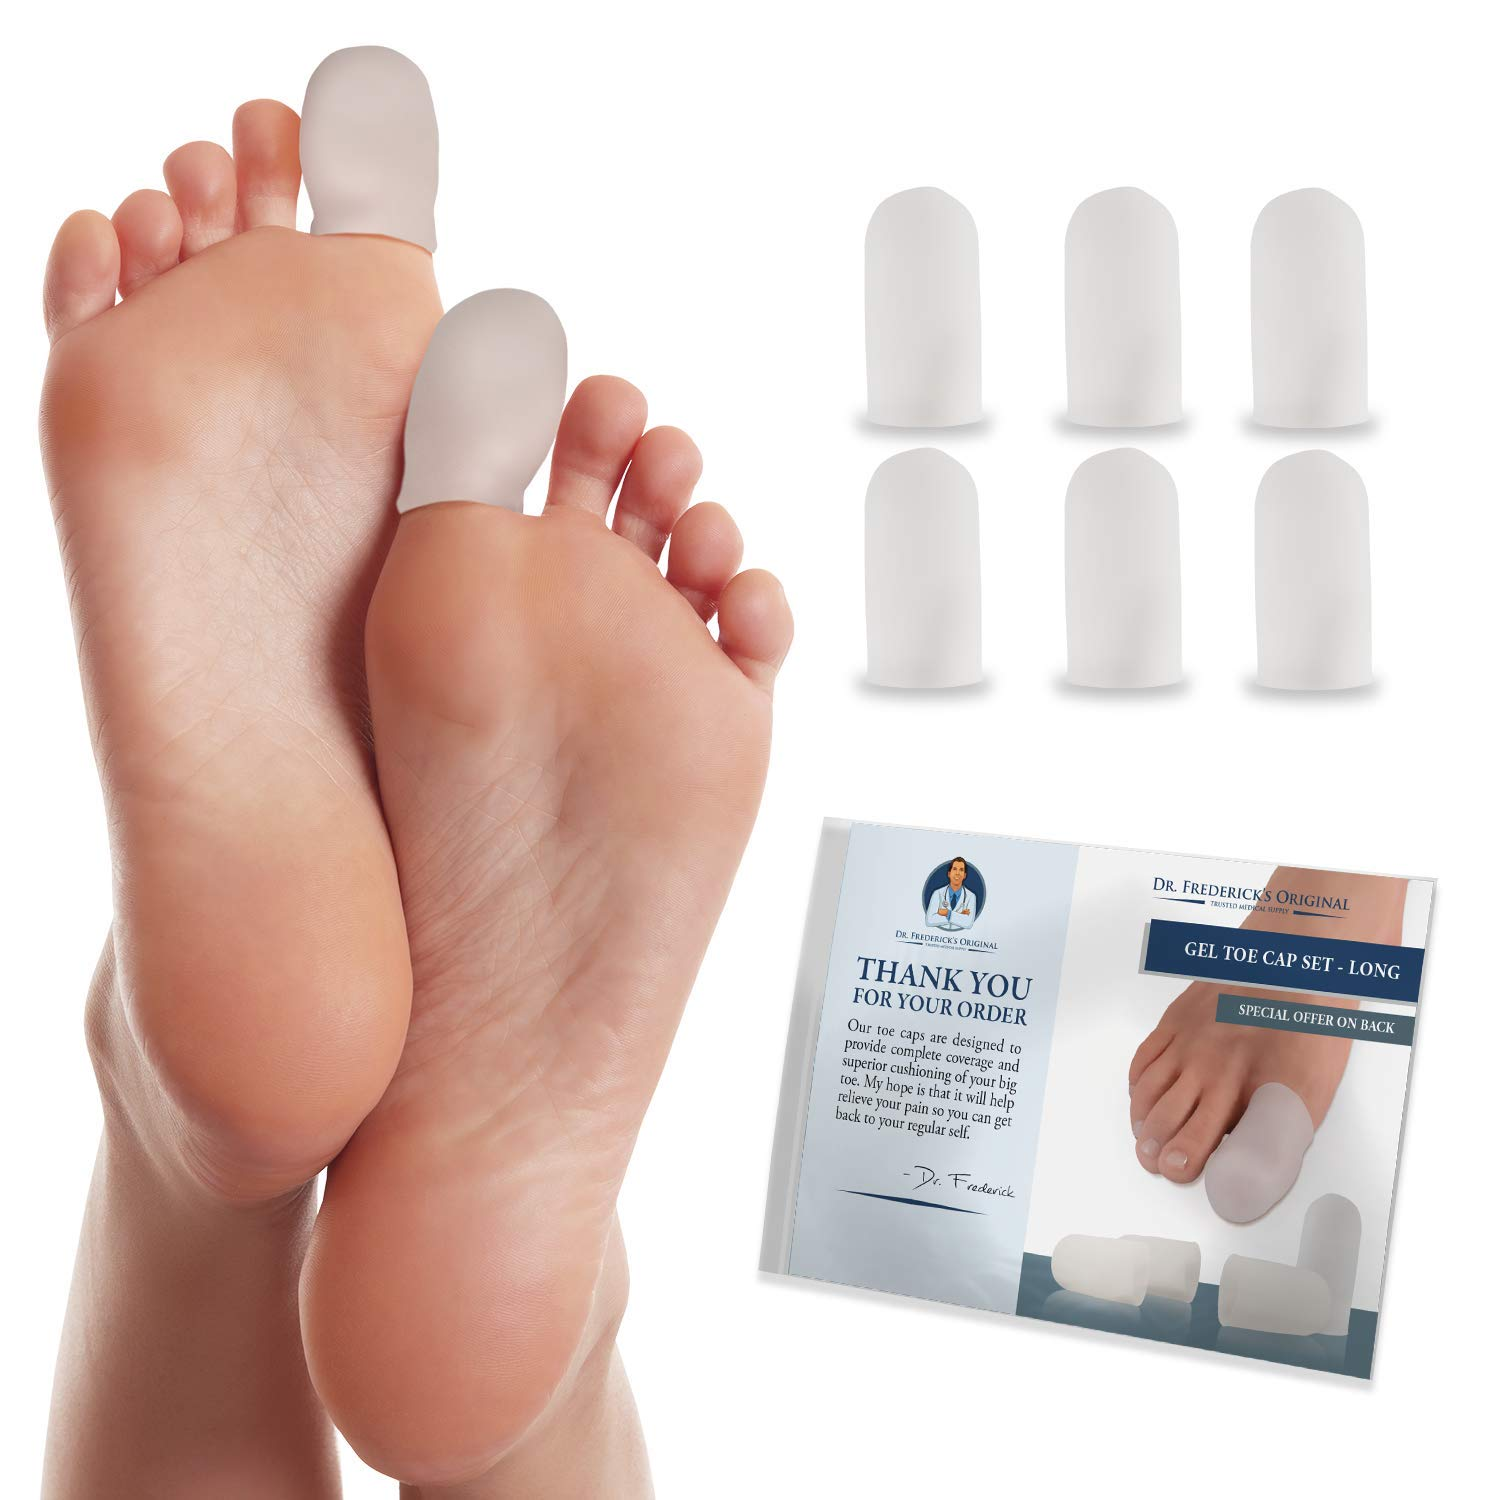 Dr. Frederick's Original Gel Toe Caps - 6 Pieces - Big Toe Guards for Protection of Ingrown Toenails, Corns, Calluses, Blisters, and More - Large: Industrial & Scientific